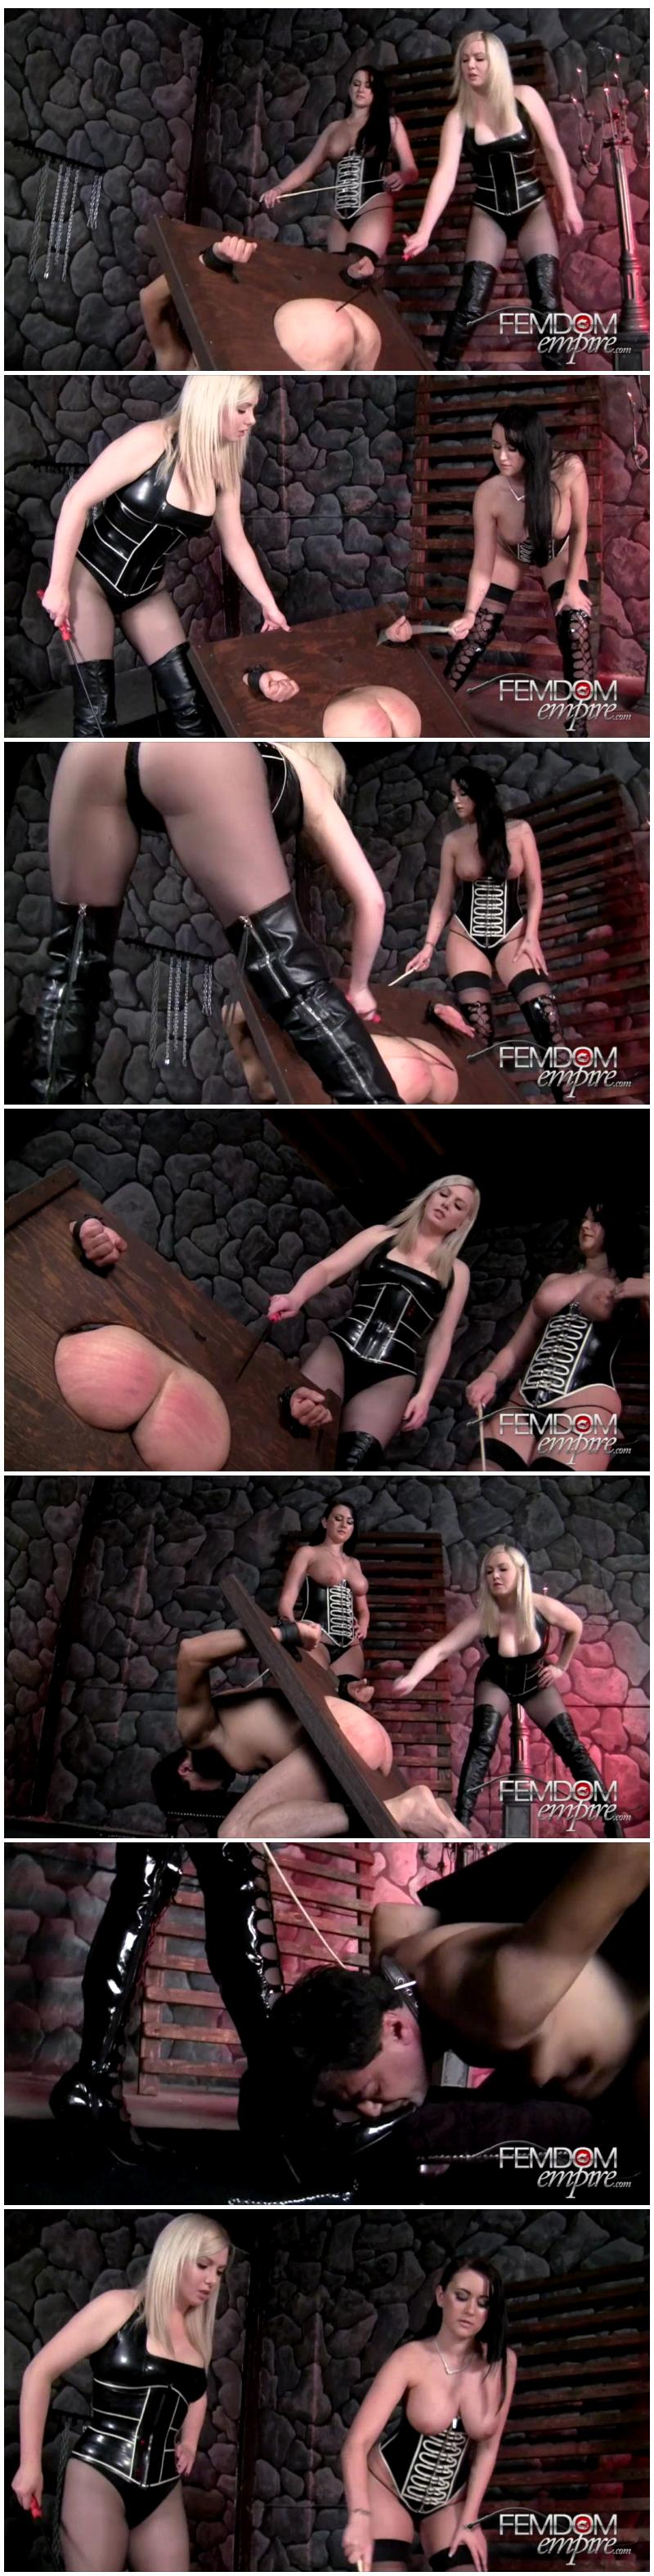 Strap-on dildo mistress sissy stories